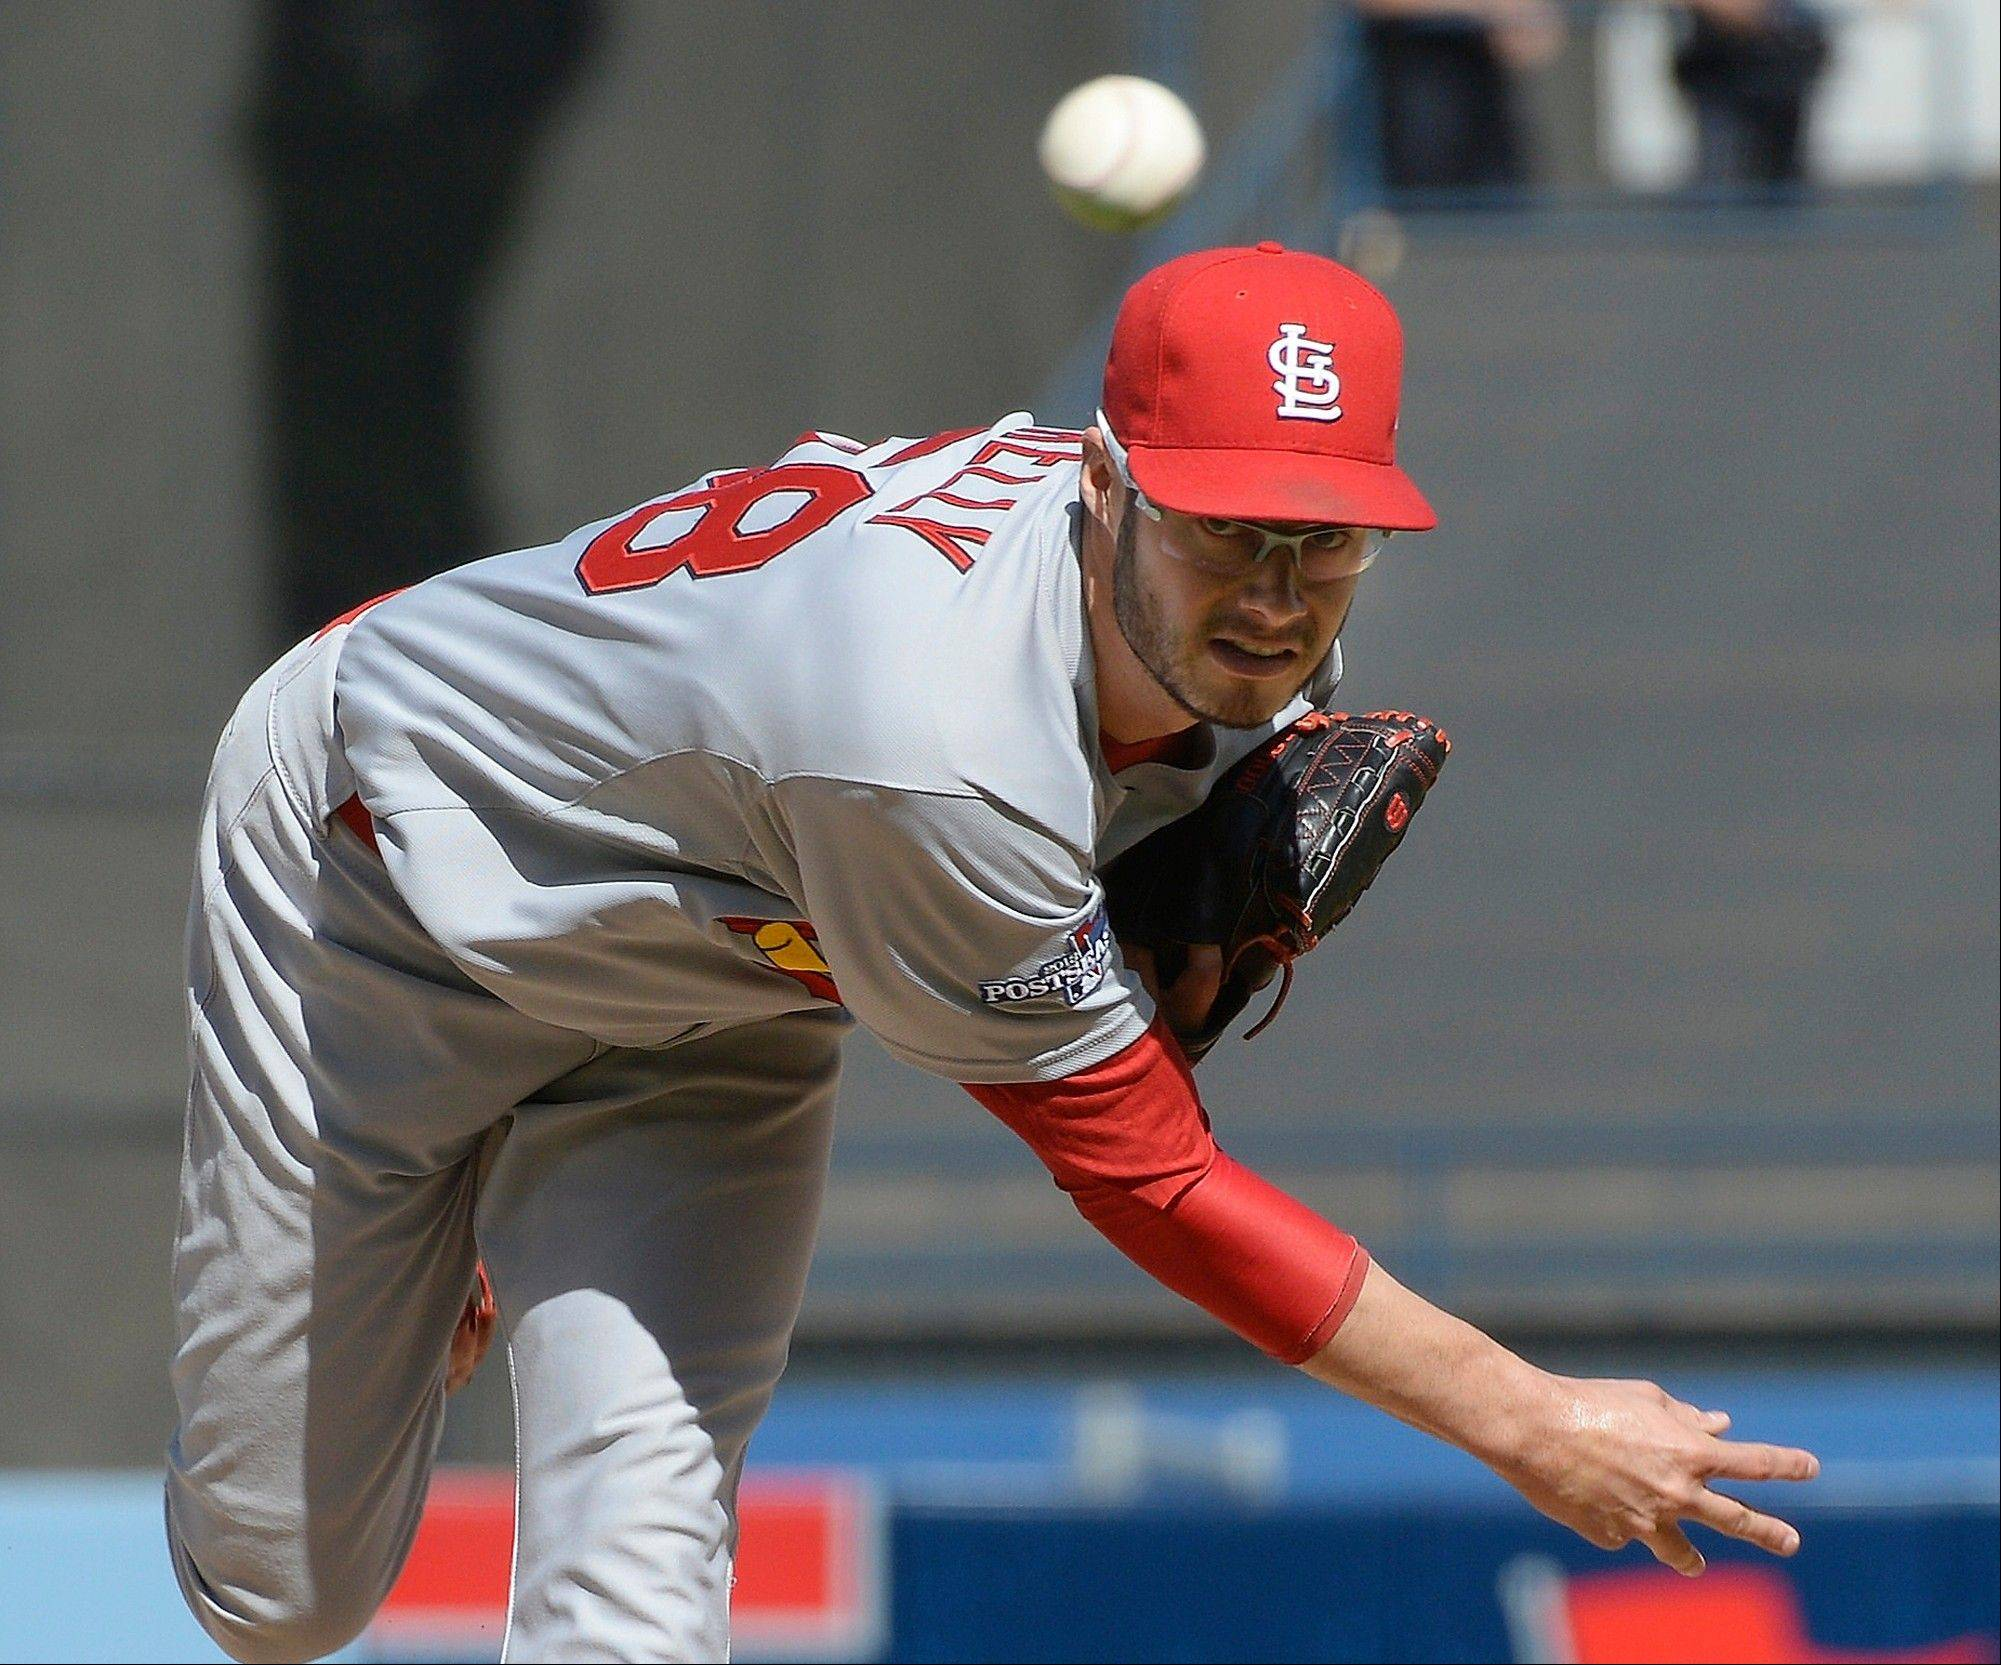 Cardinals starting pitcher Joe Kelly throws during the first inning of Game 5. Kelly took the loss.